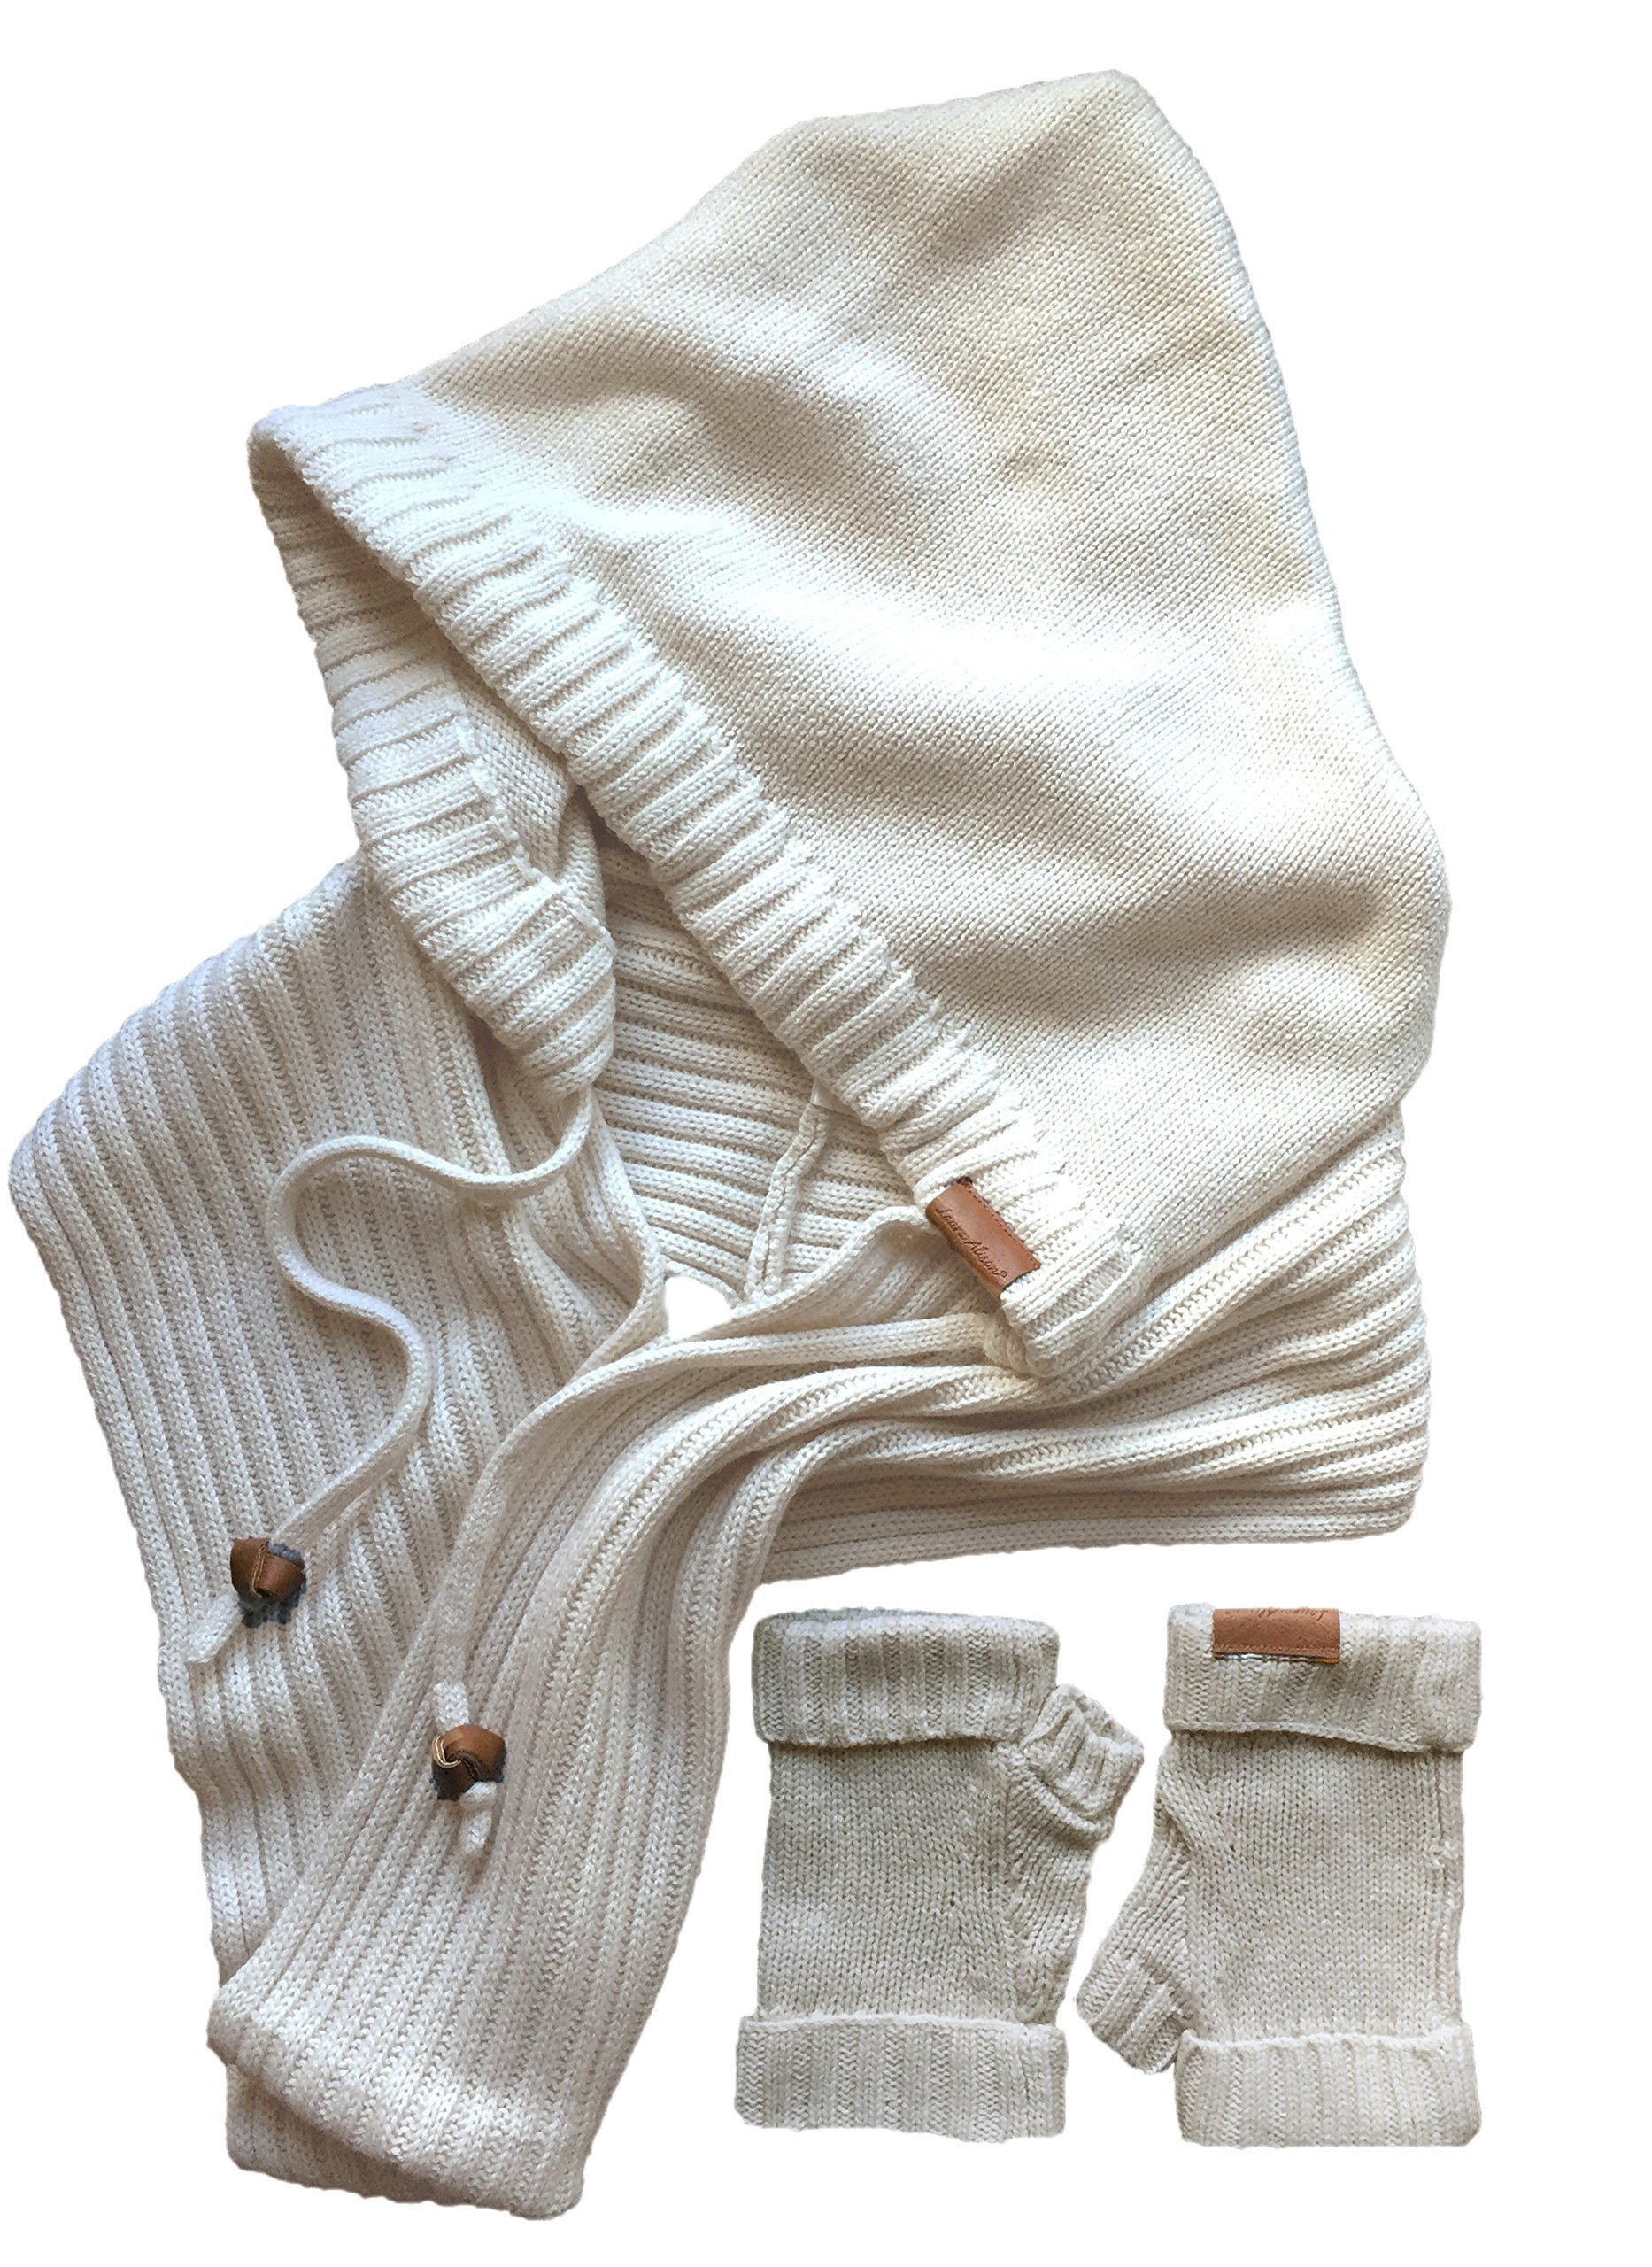 Laura Alison Wool Silk Hooded Infinity Scarf and Fingerless Glove Gift Set - White